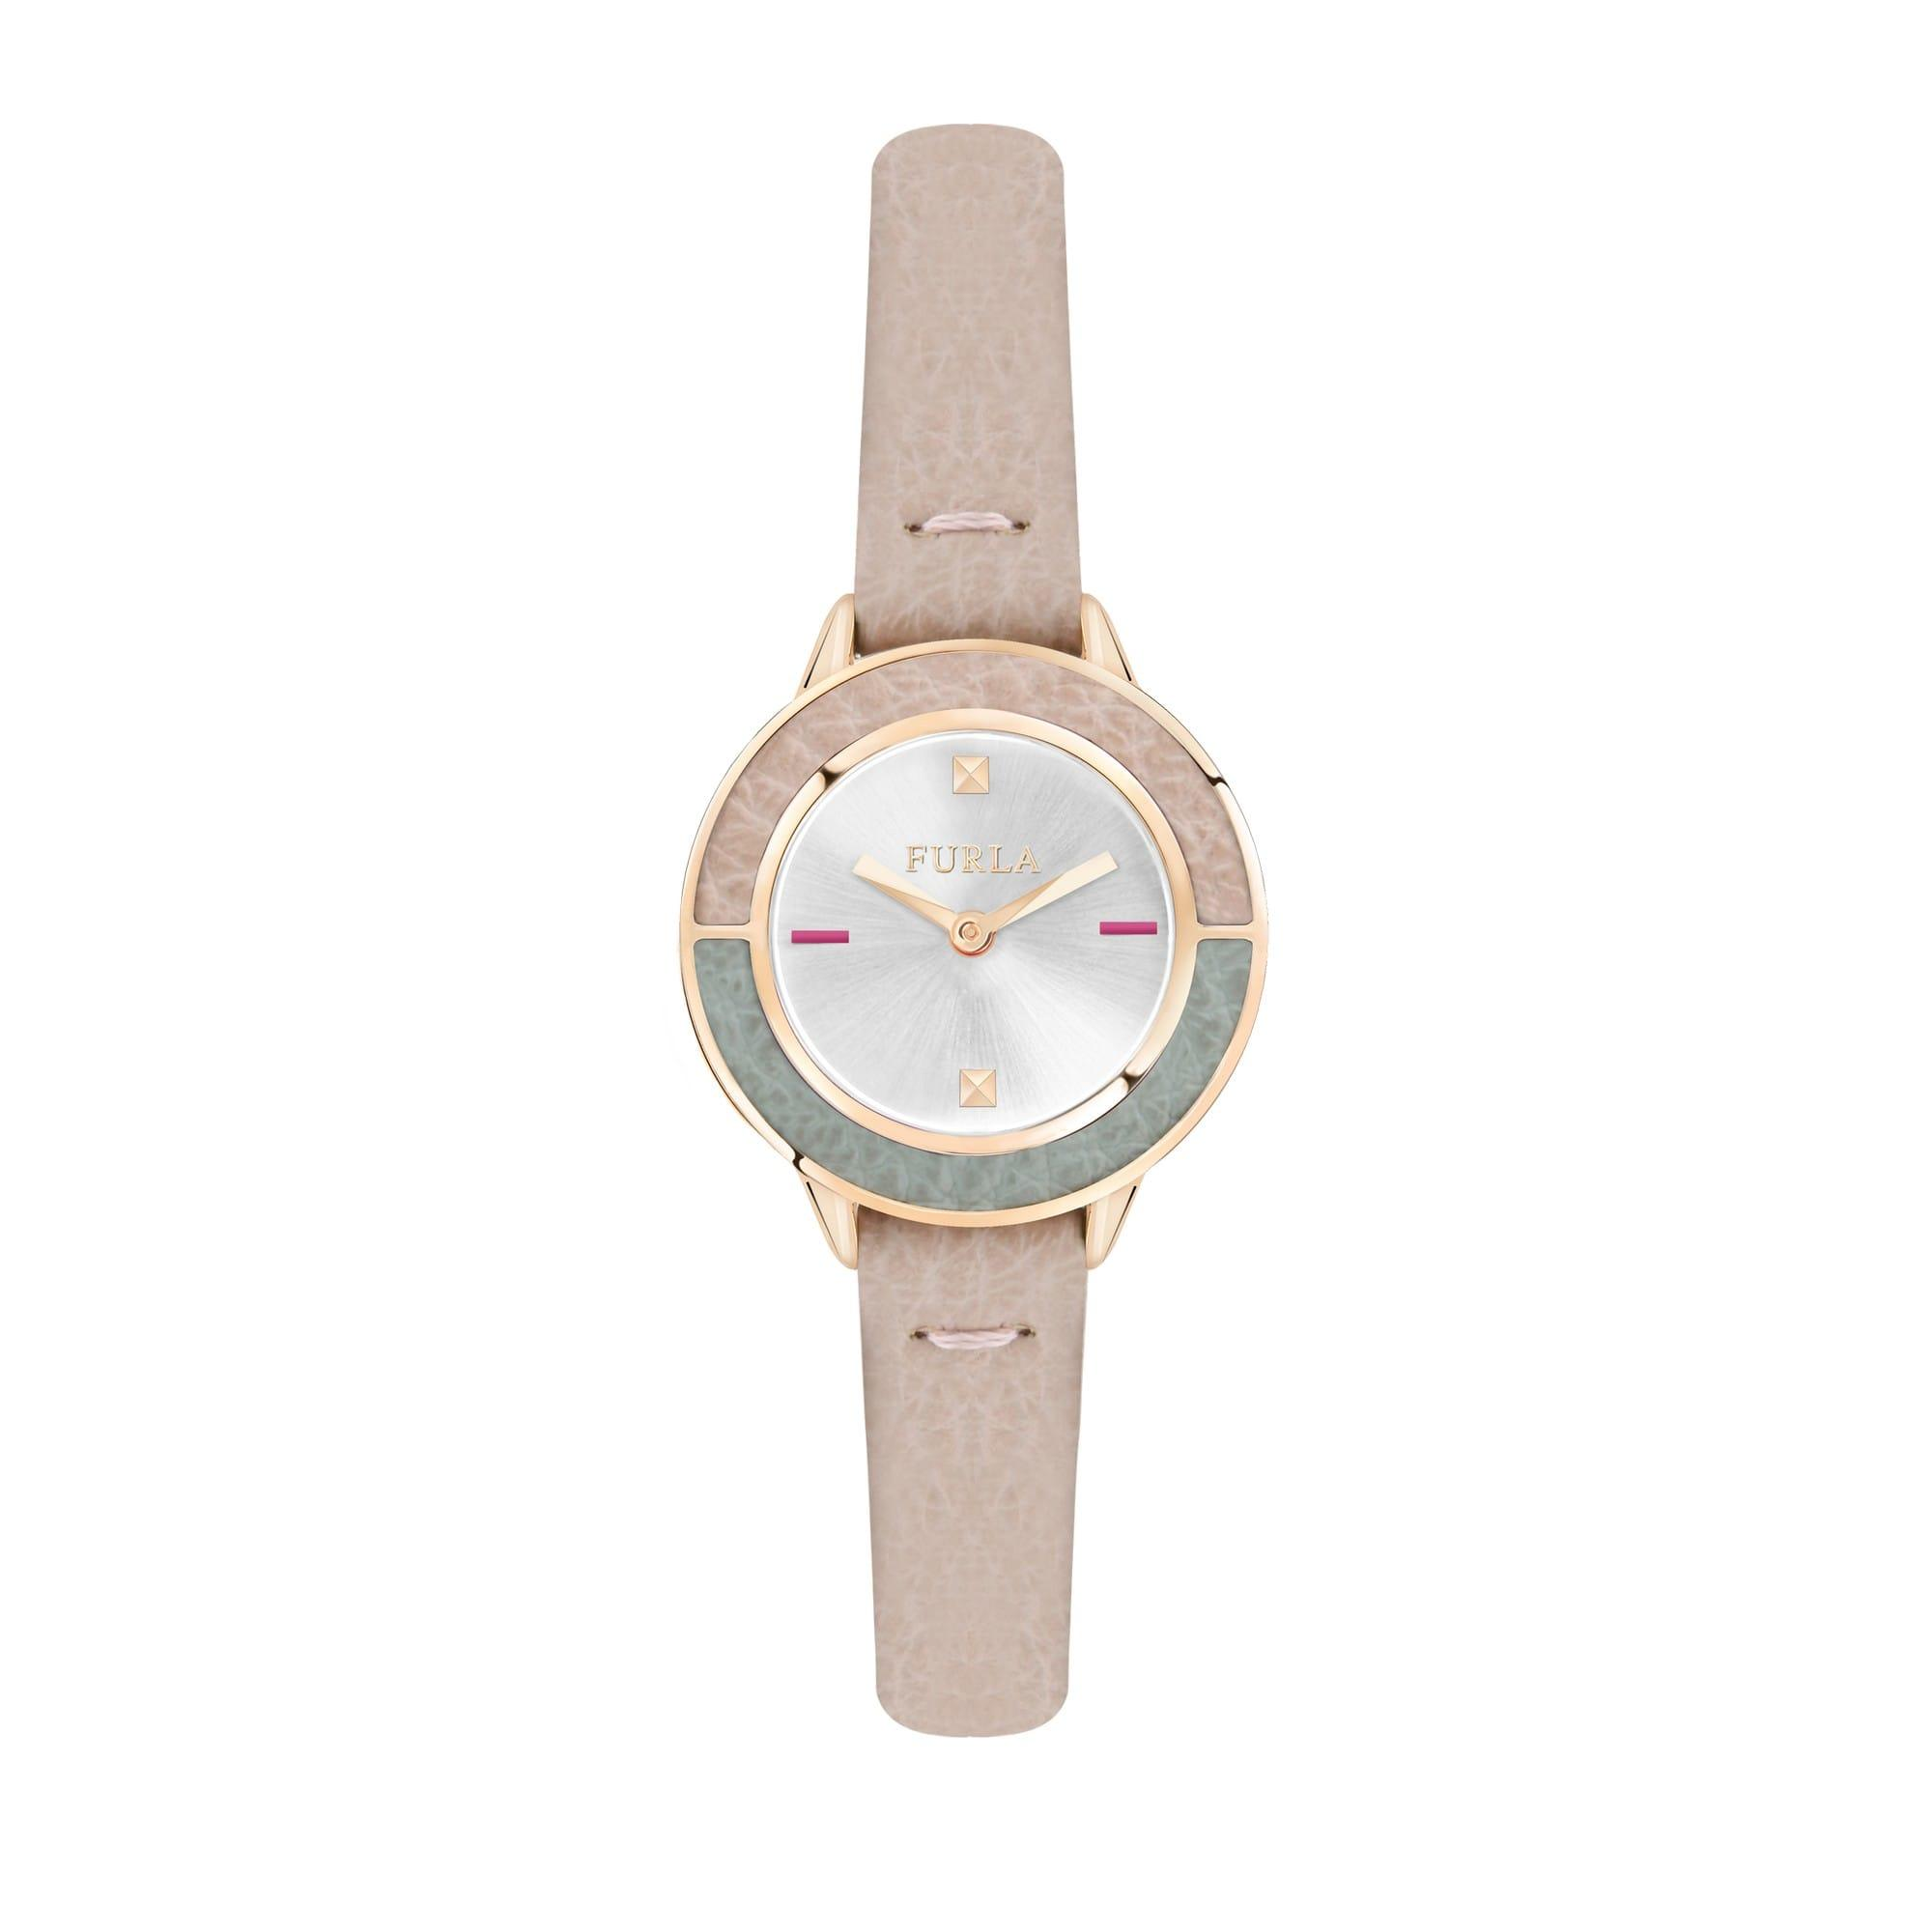 Furla Philippines Price List Watches Bags Sunglasses For Club Brown 26mm Leather Strap Quartz Womens Watch R4251109509 Intl